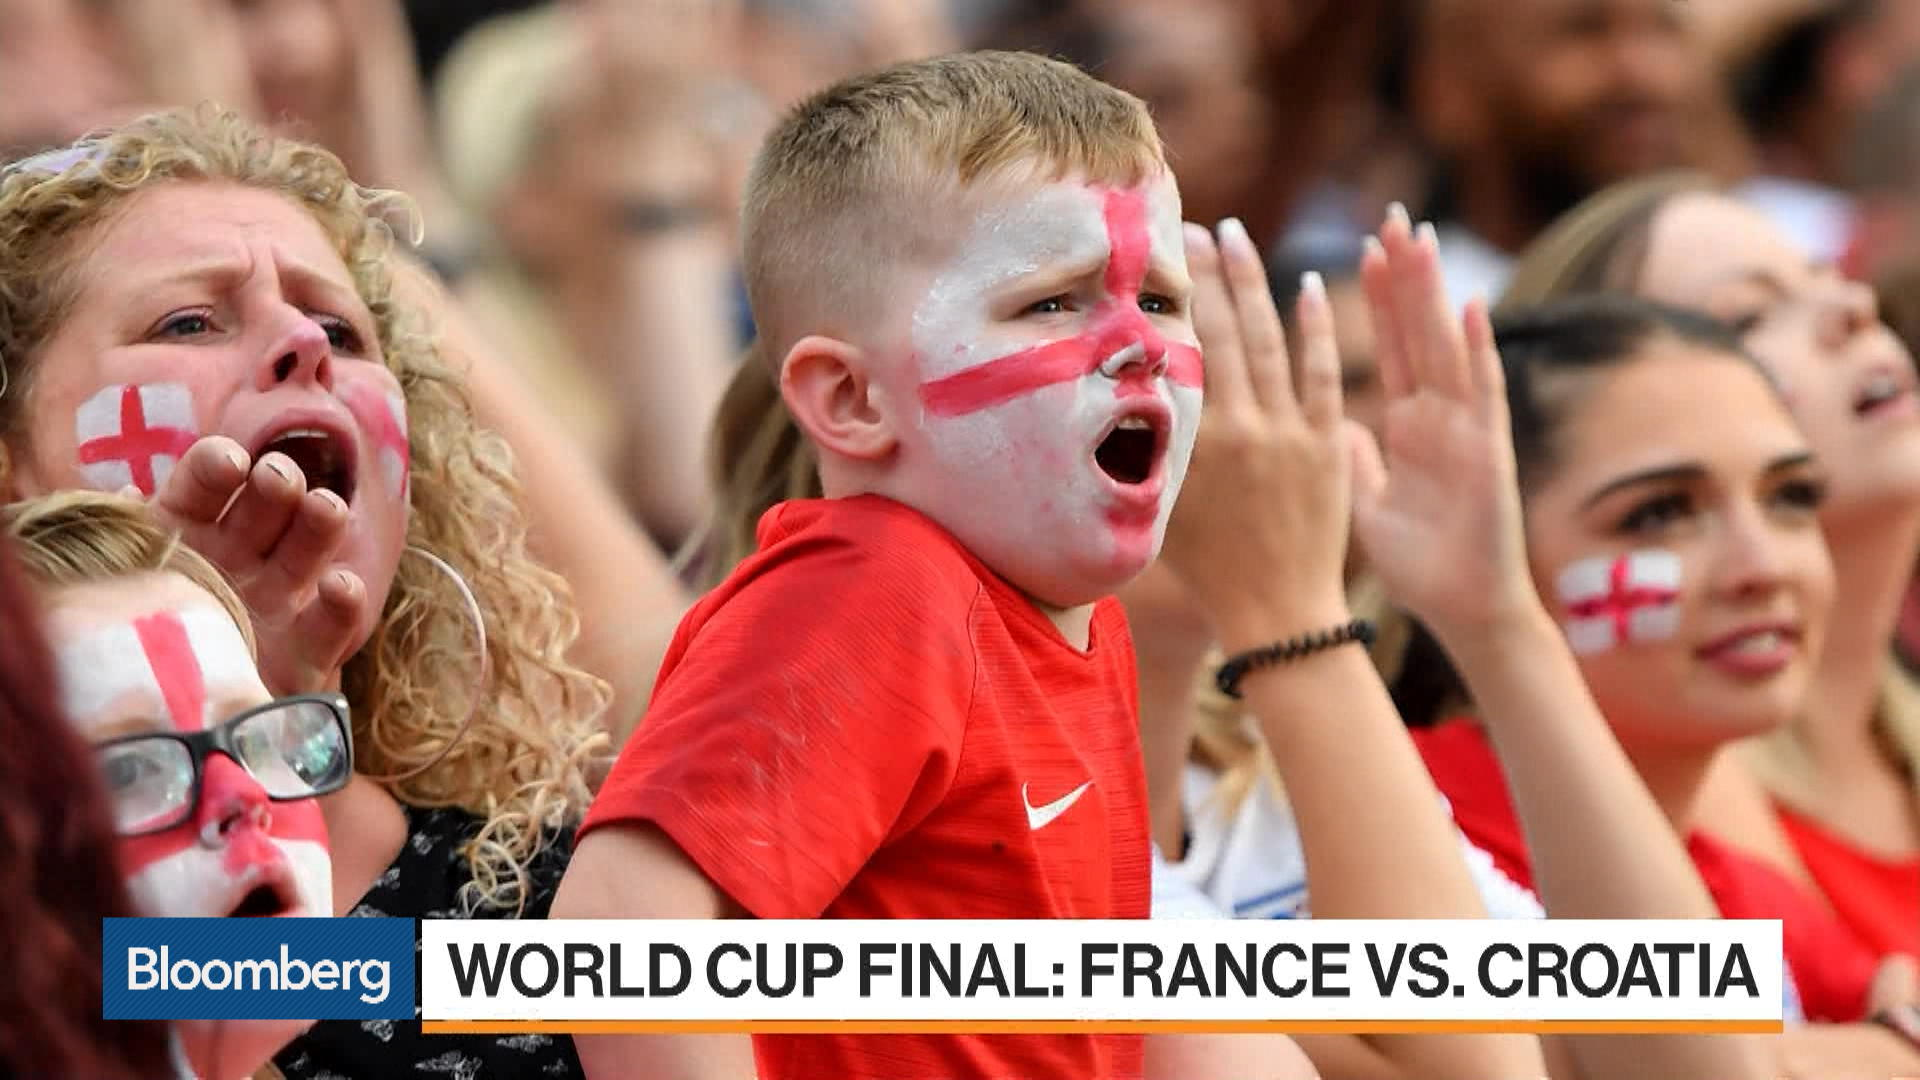 France and Croatia to Face Off at World Cup Final – Bloomberg